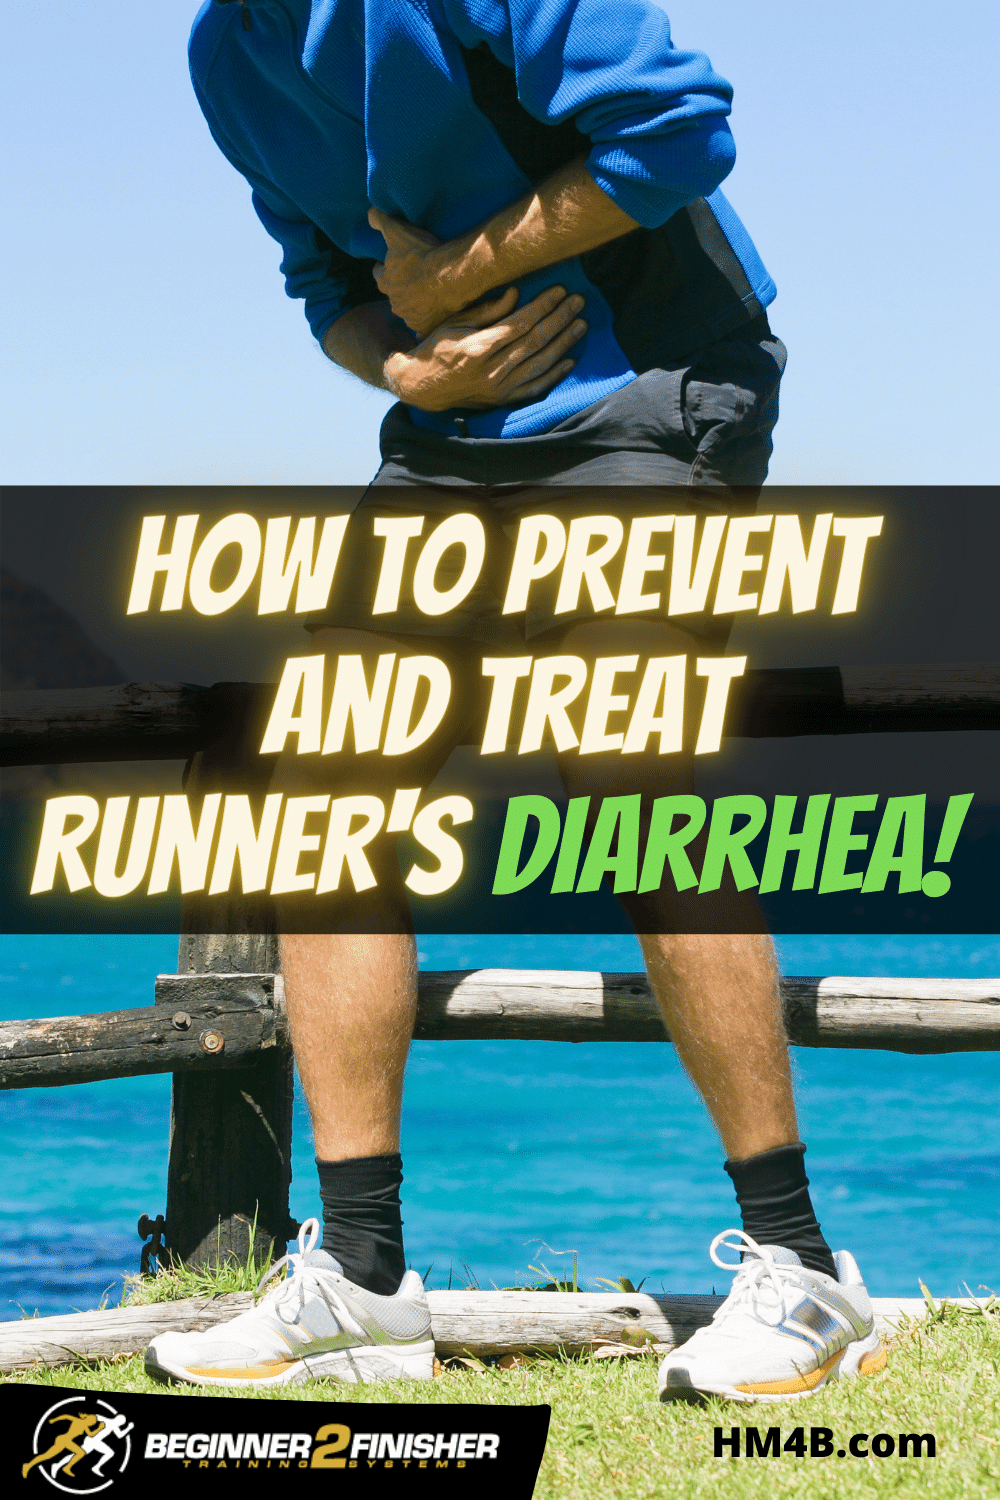 Why Does Runner's Diarrhea Happen? How To Prevent & Treat